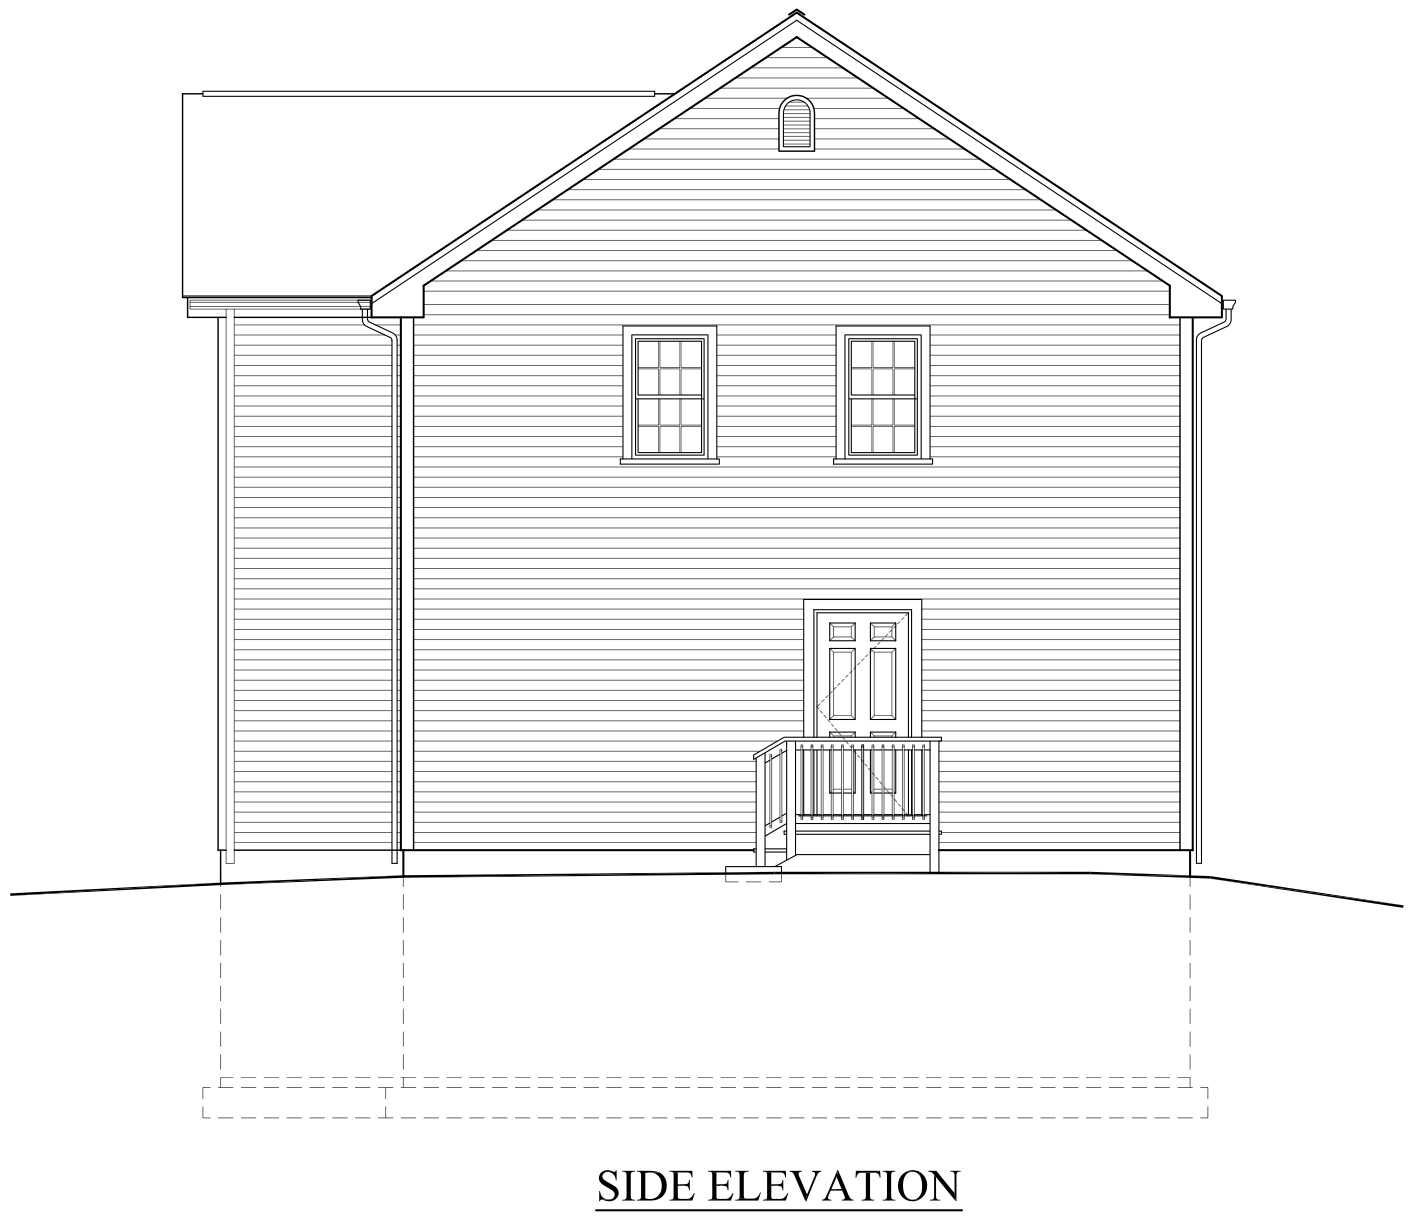 Front View Elevation Of House Plans : What is front elevation